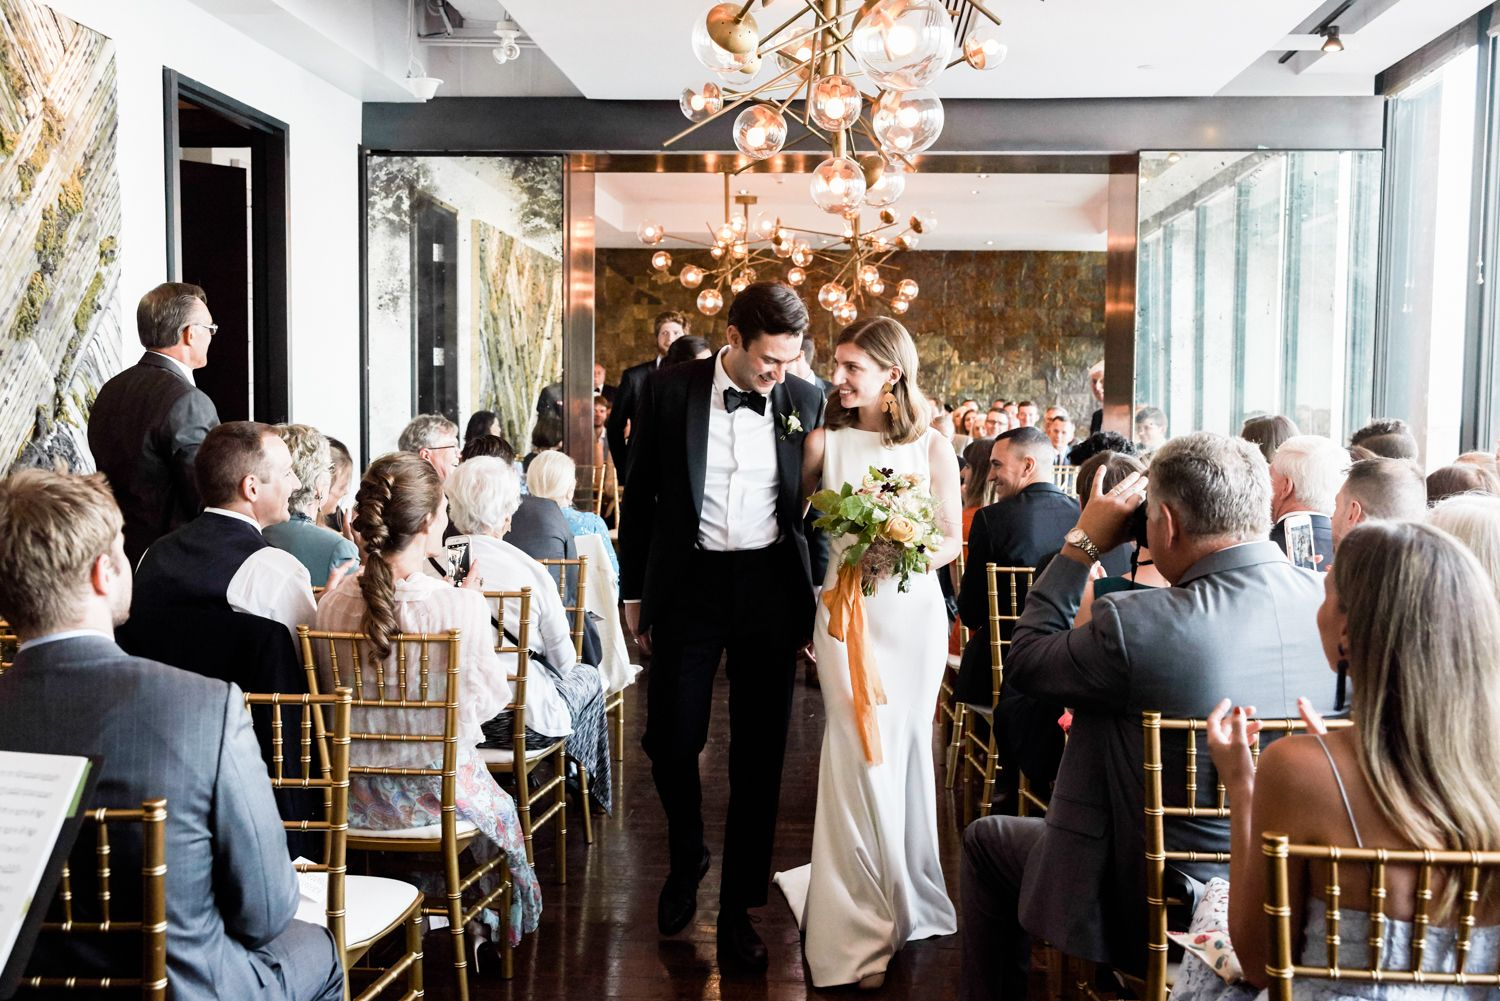 The Best Modern Wedding Venue High Atop Downtown Toronto